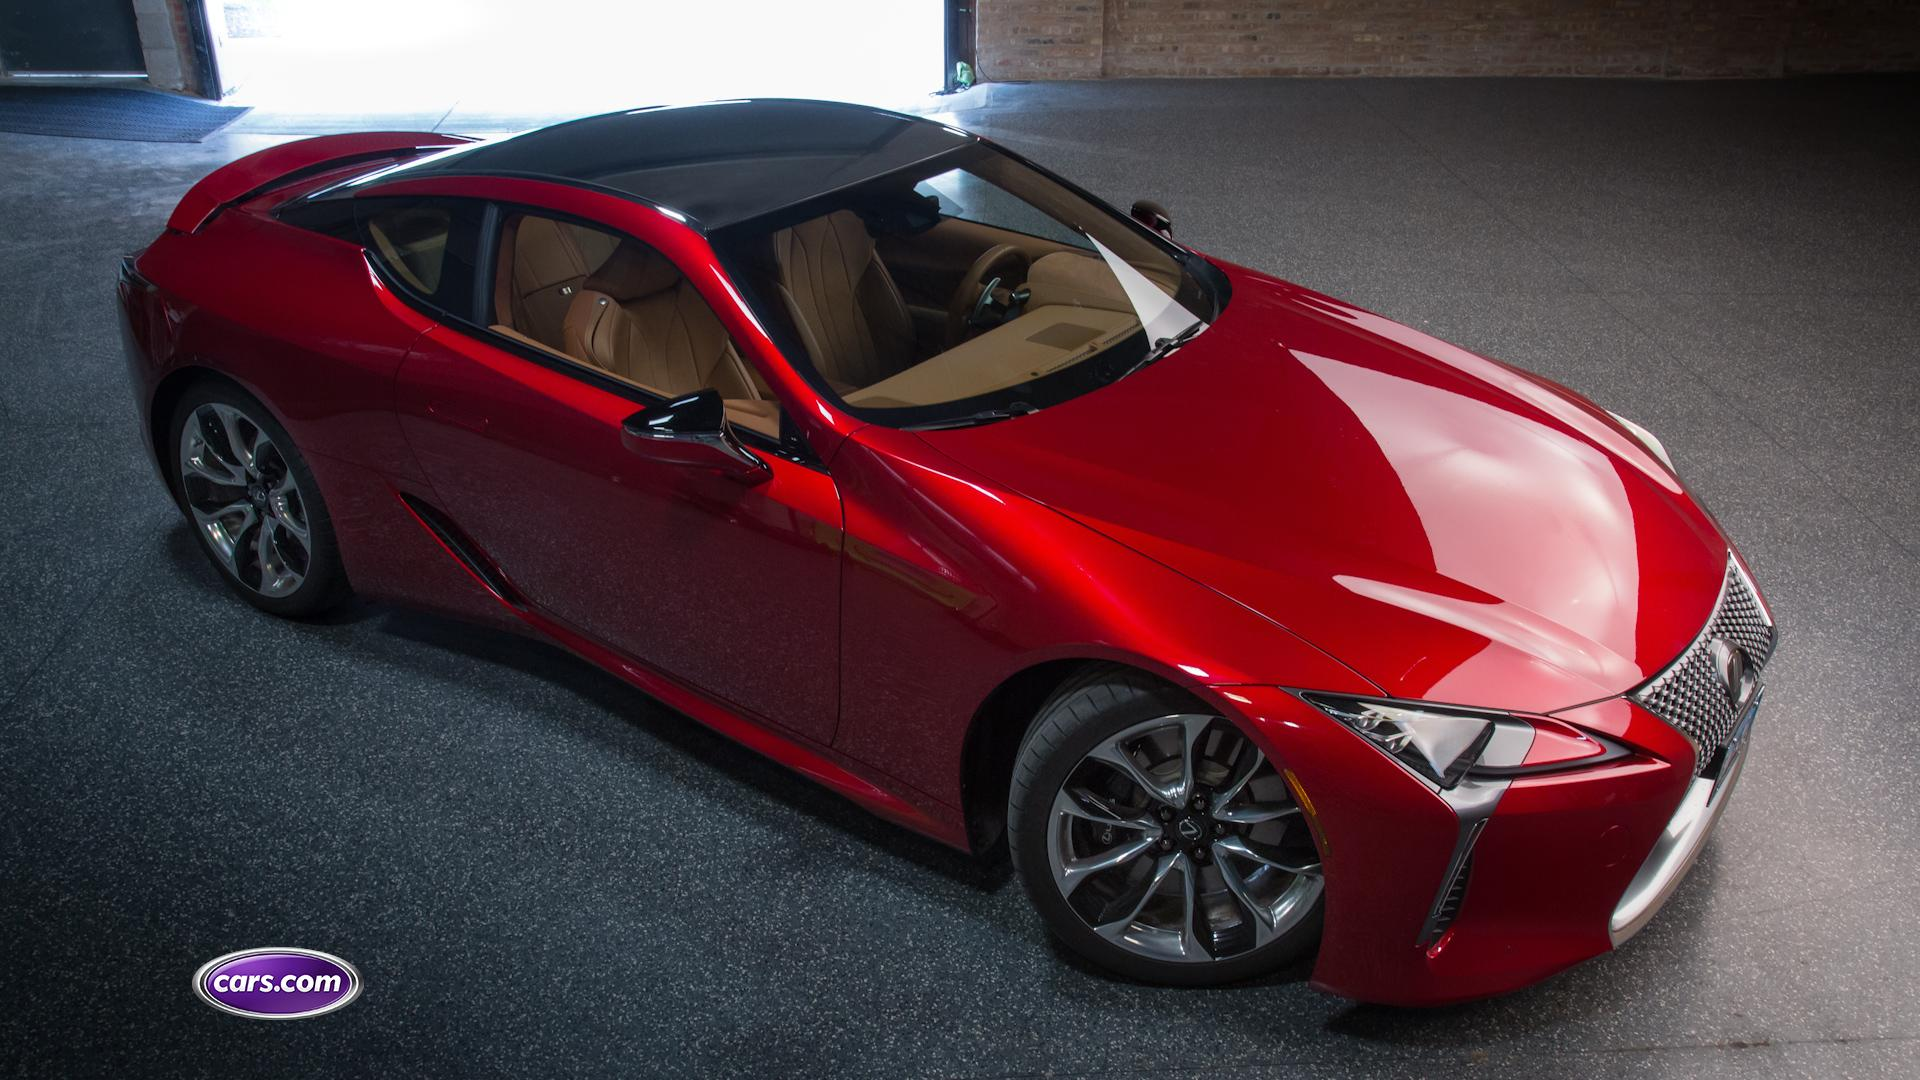 Lexus Cars: Lexus - New Models: Pricing, MPG, And Ratings